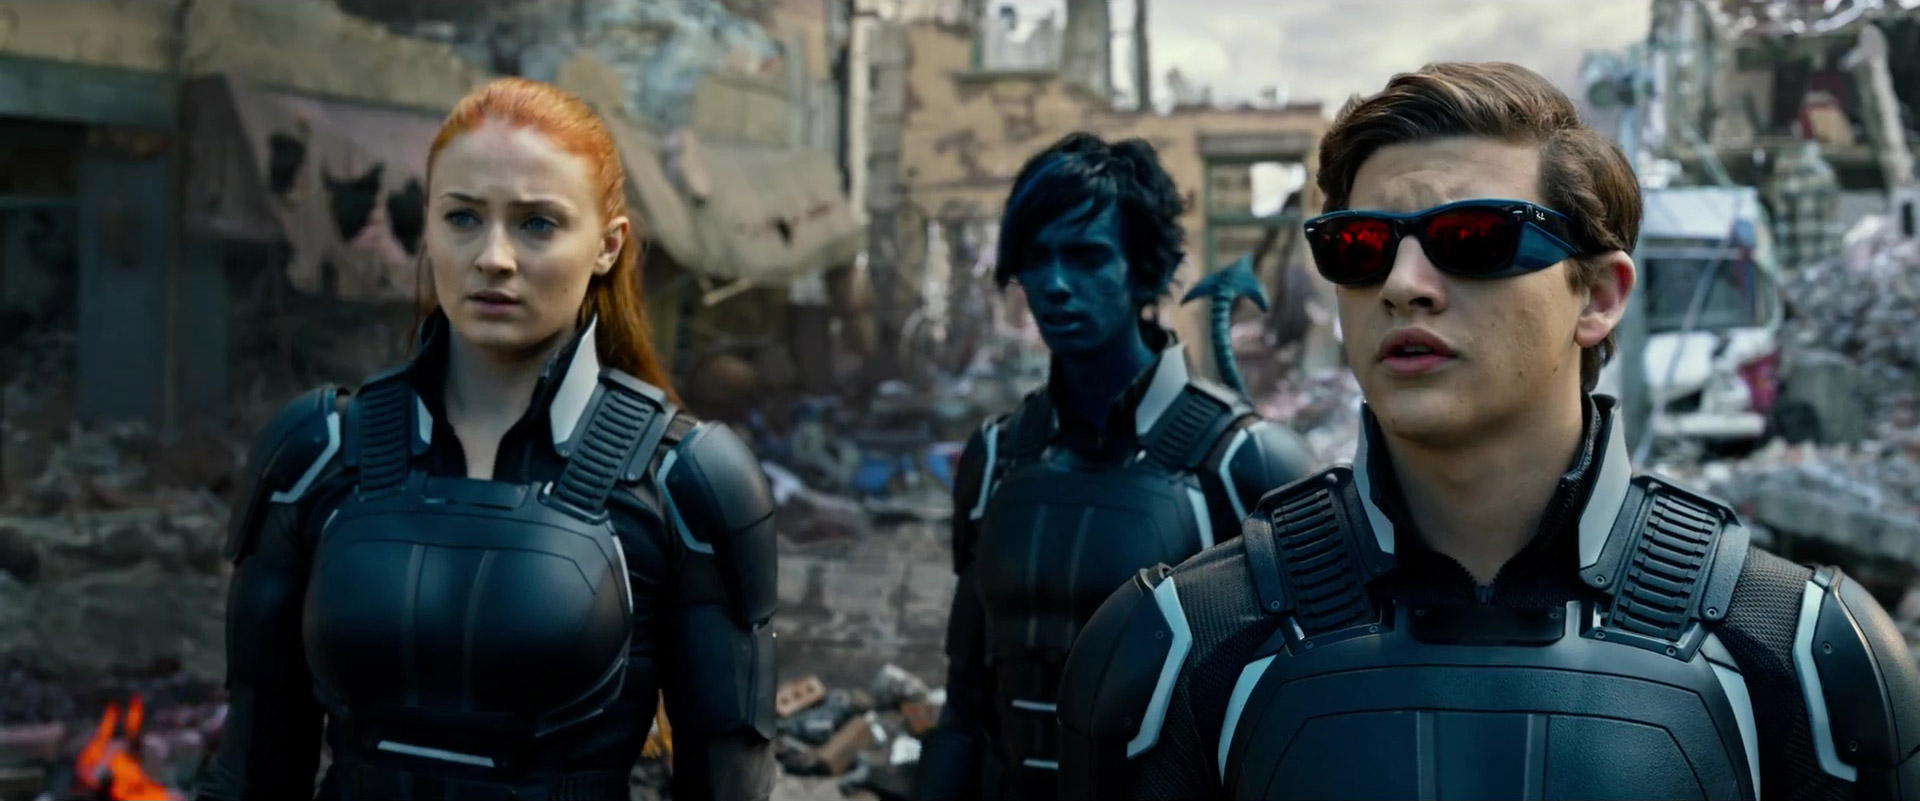 x-men-apocolypse-latest-trailer